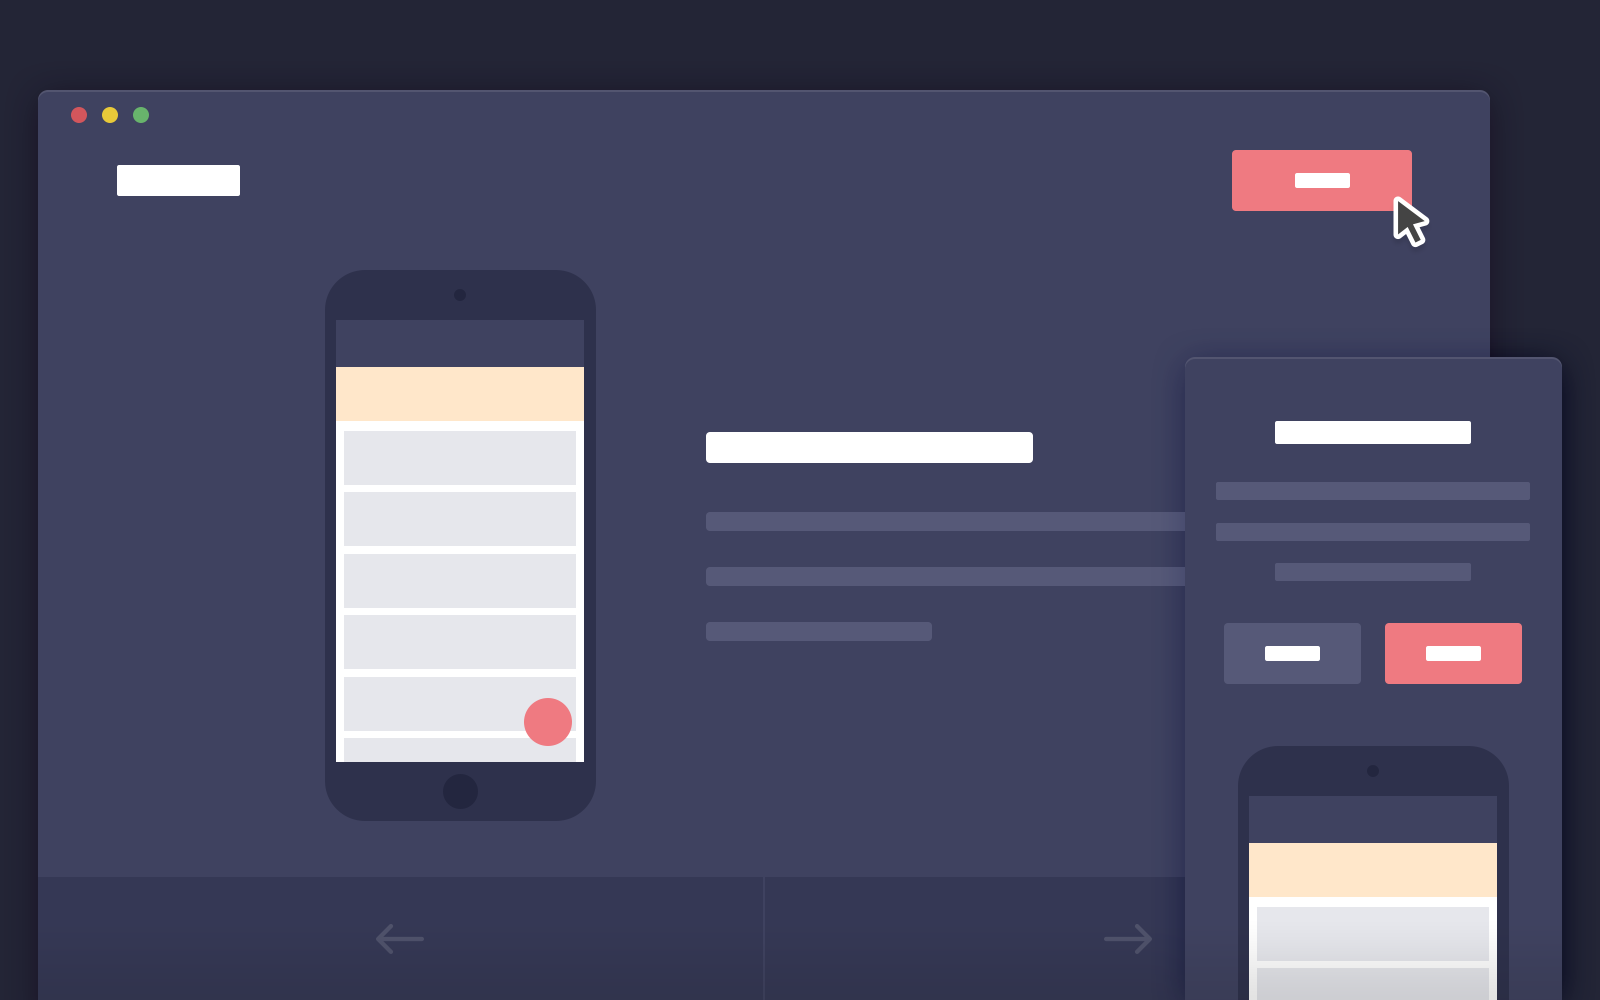 Jquery plugins to work with data presentation and grid layout - App Introduction Template